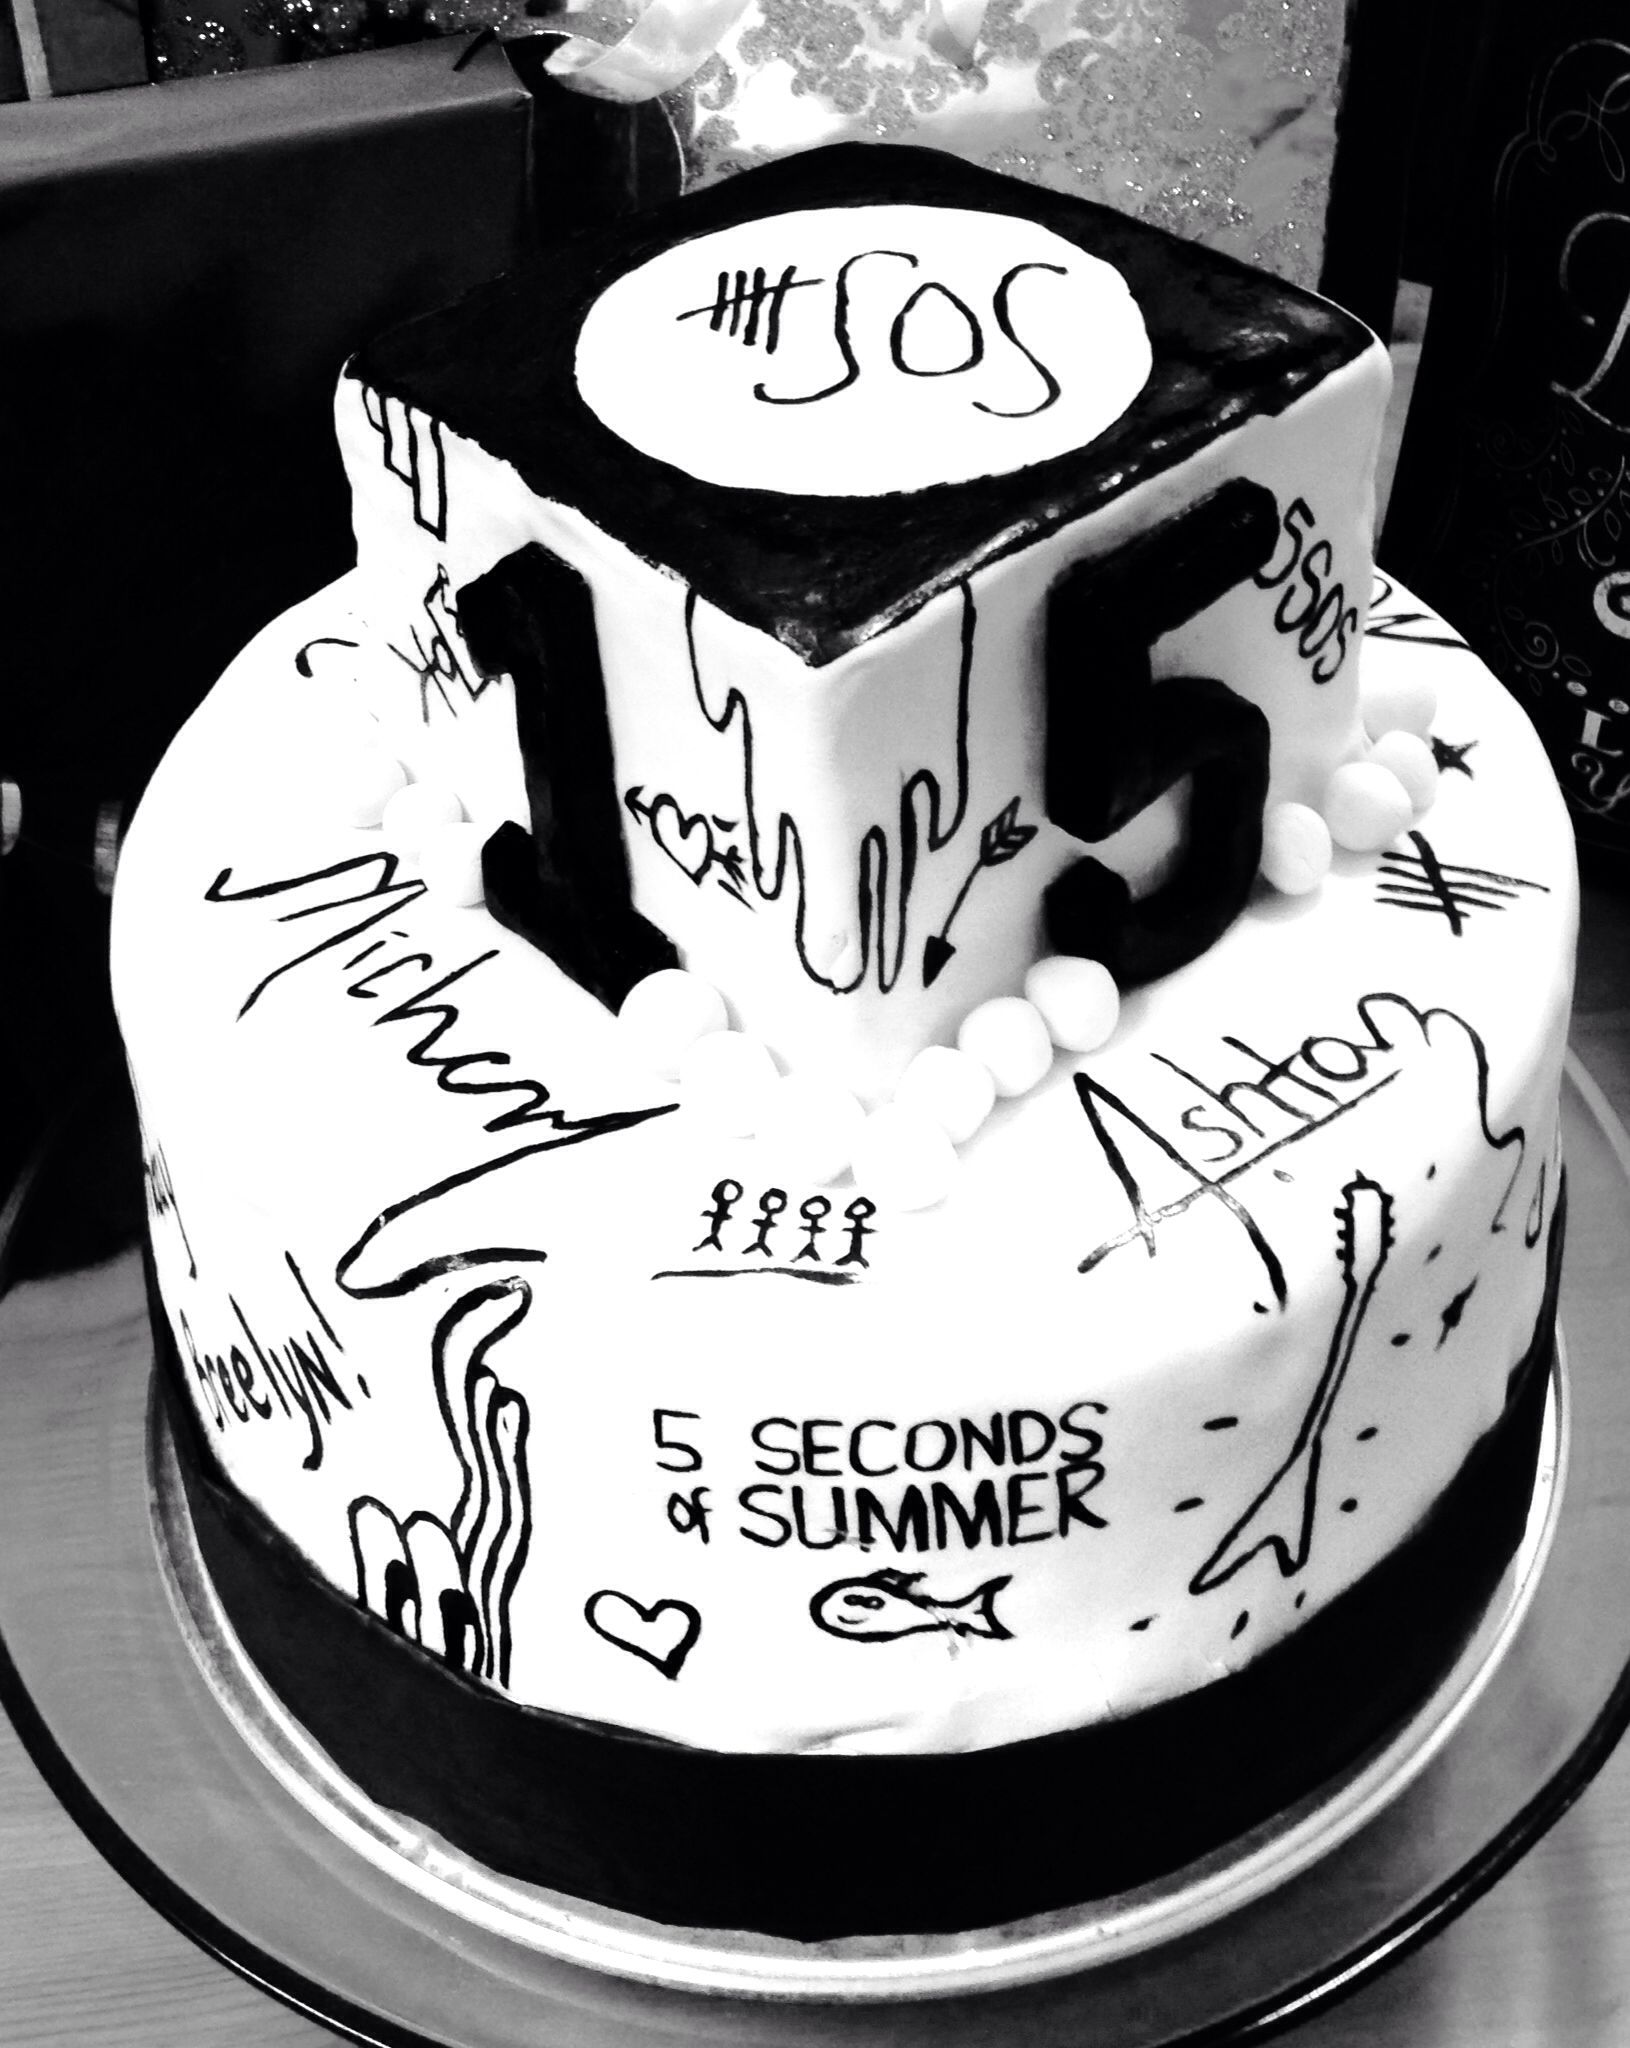 5 seconds of summer birthday cake what dad 39 s would do for for 5sos room decor ideas